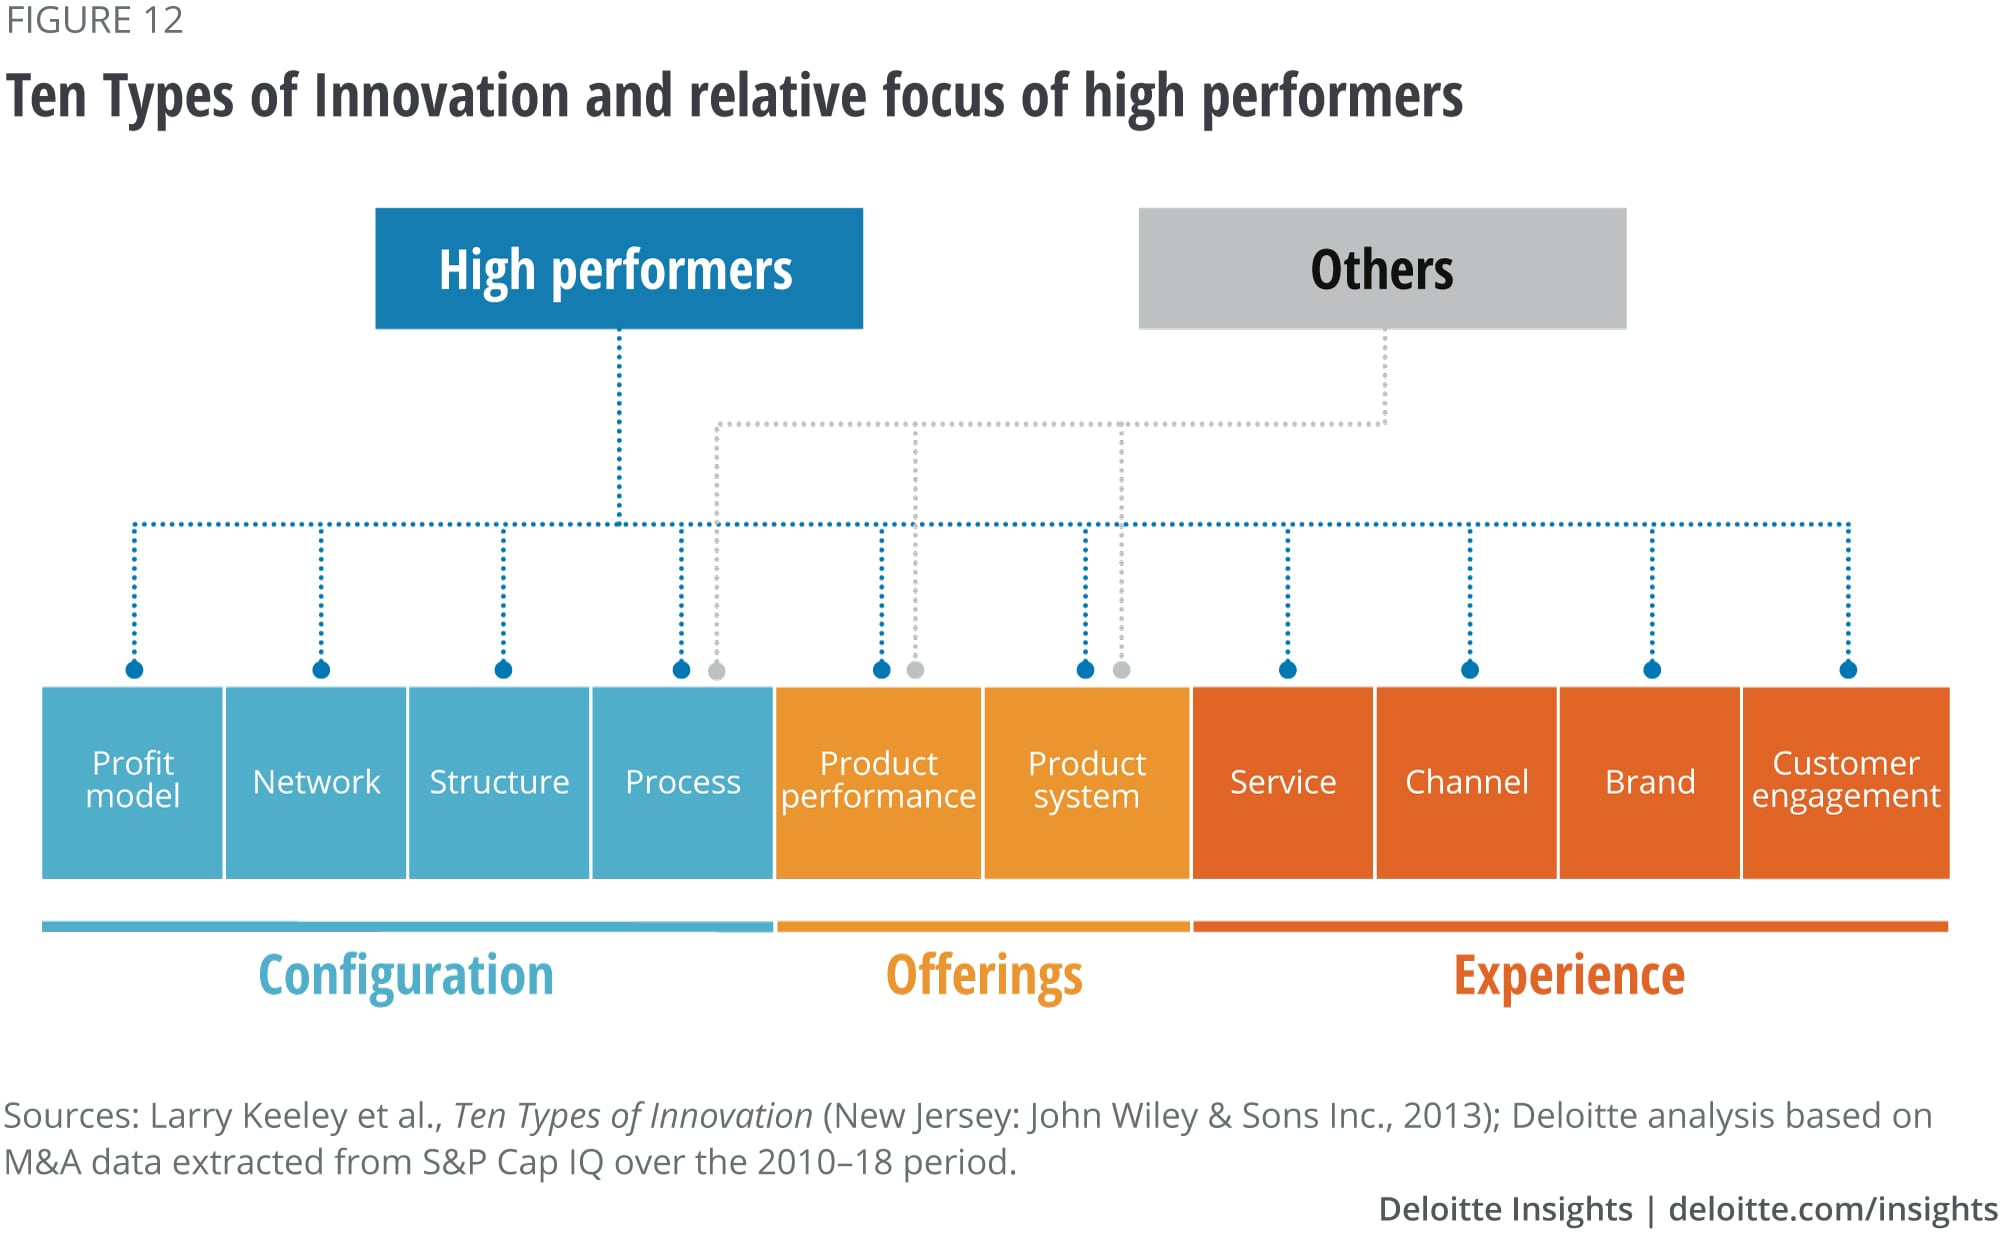 Ten Types of Innovation and relative focus of high performers